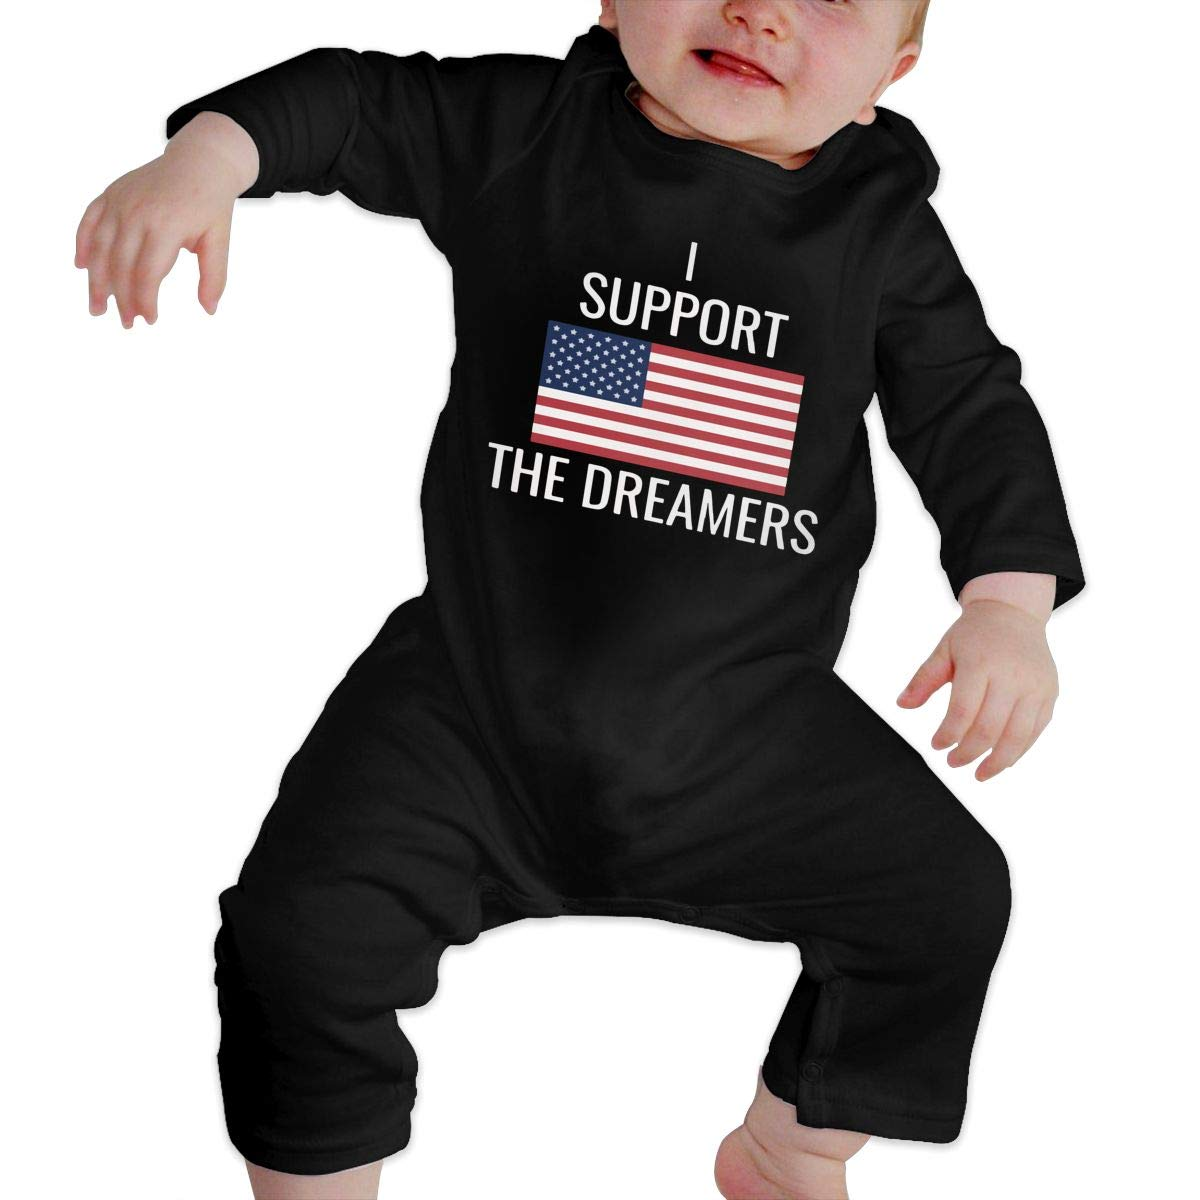 Baby Girls Round Collar I Support The Dreamers US Flag Long Sleeve Romper Jumpsuit 100/% Cotton Suit 6-24 Months